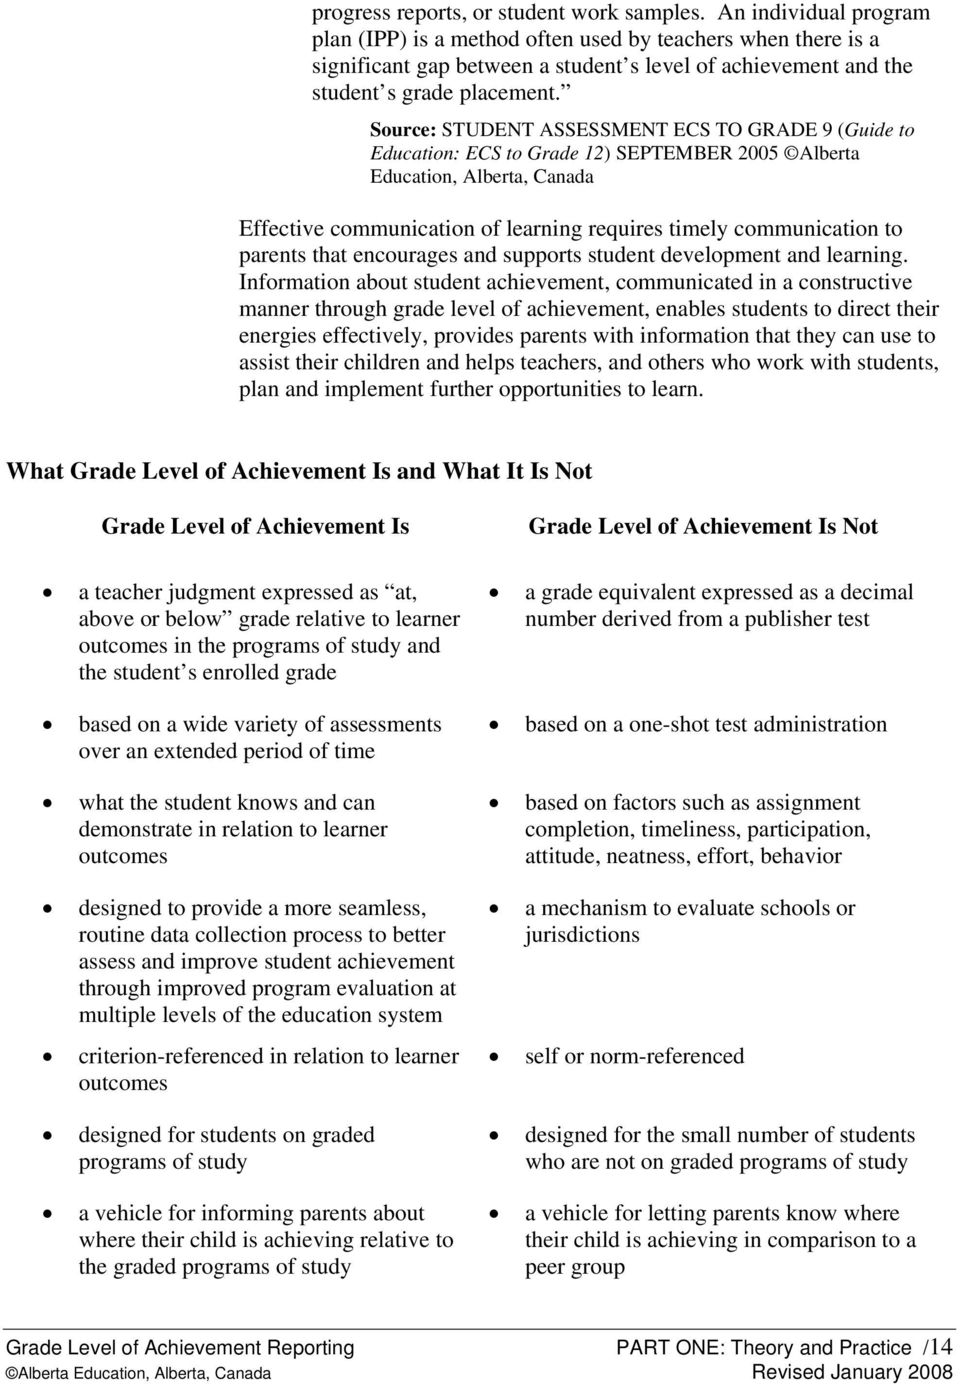 Source: STUDENT ASSESSMENT ECS TO GRADE 9 (Guide to Education: ECS to Grade 12) SEPTEMBER 2005 Alberta Education, Alberta, Canada Effective communication of learning requires timely communication to